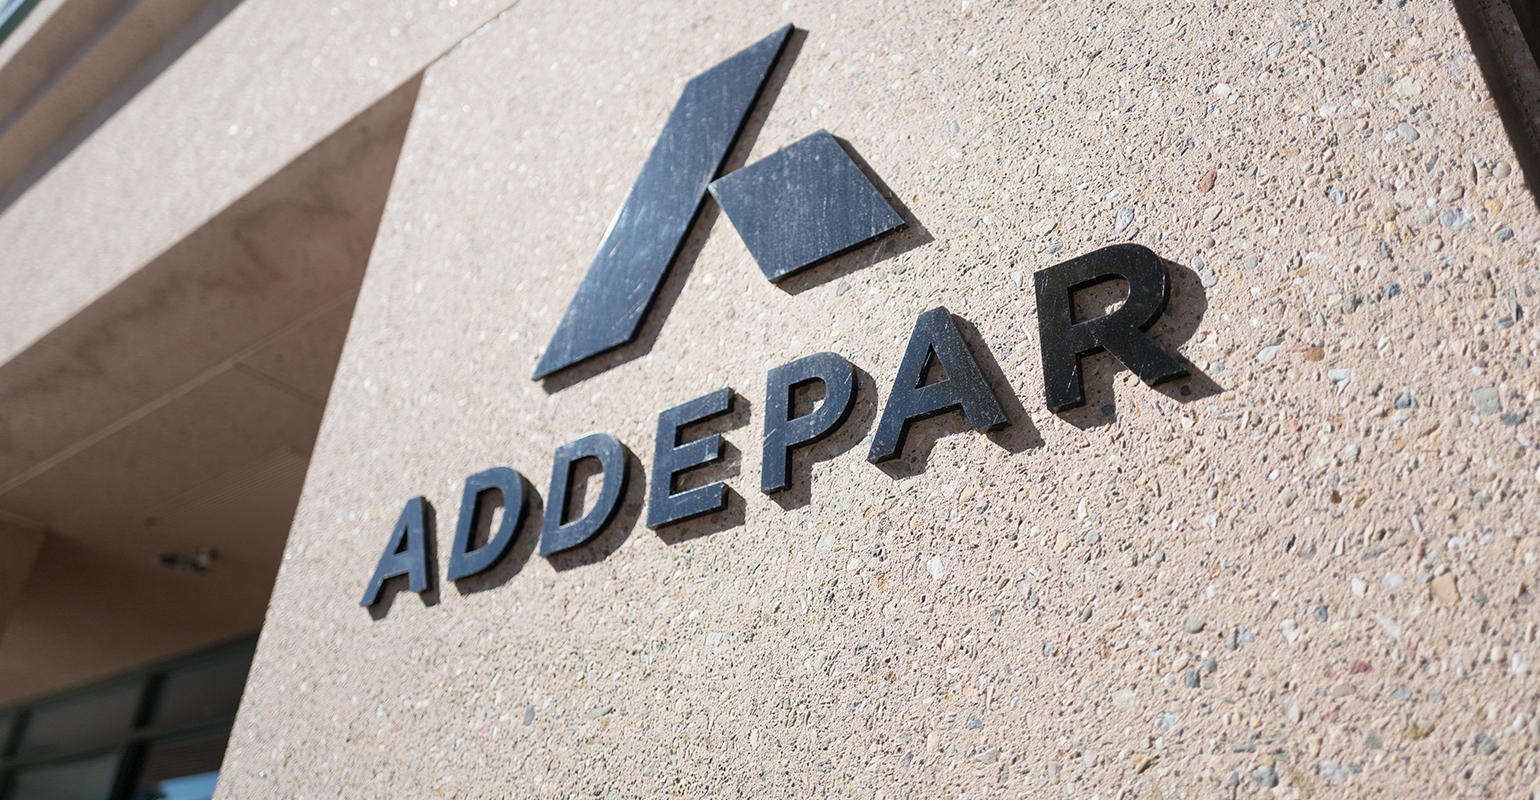 Access here alternative investment news about Addepar Closes $117M Series E Round